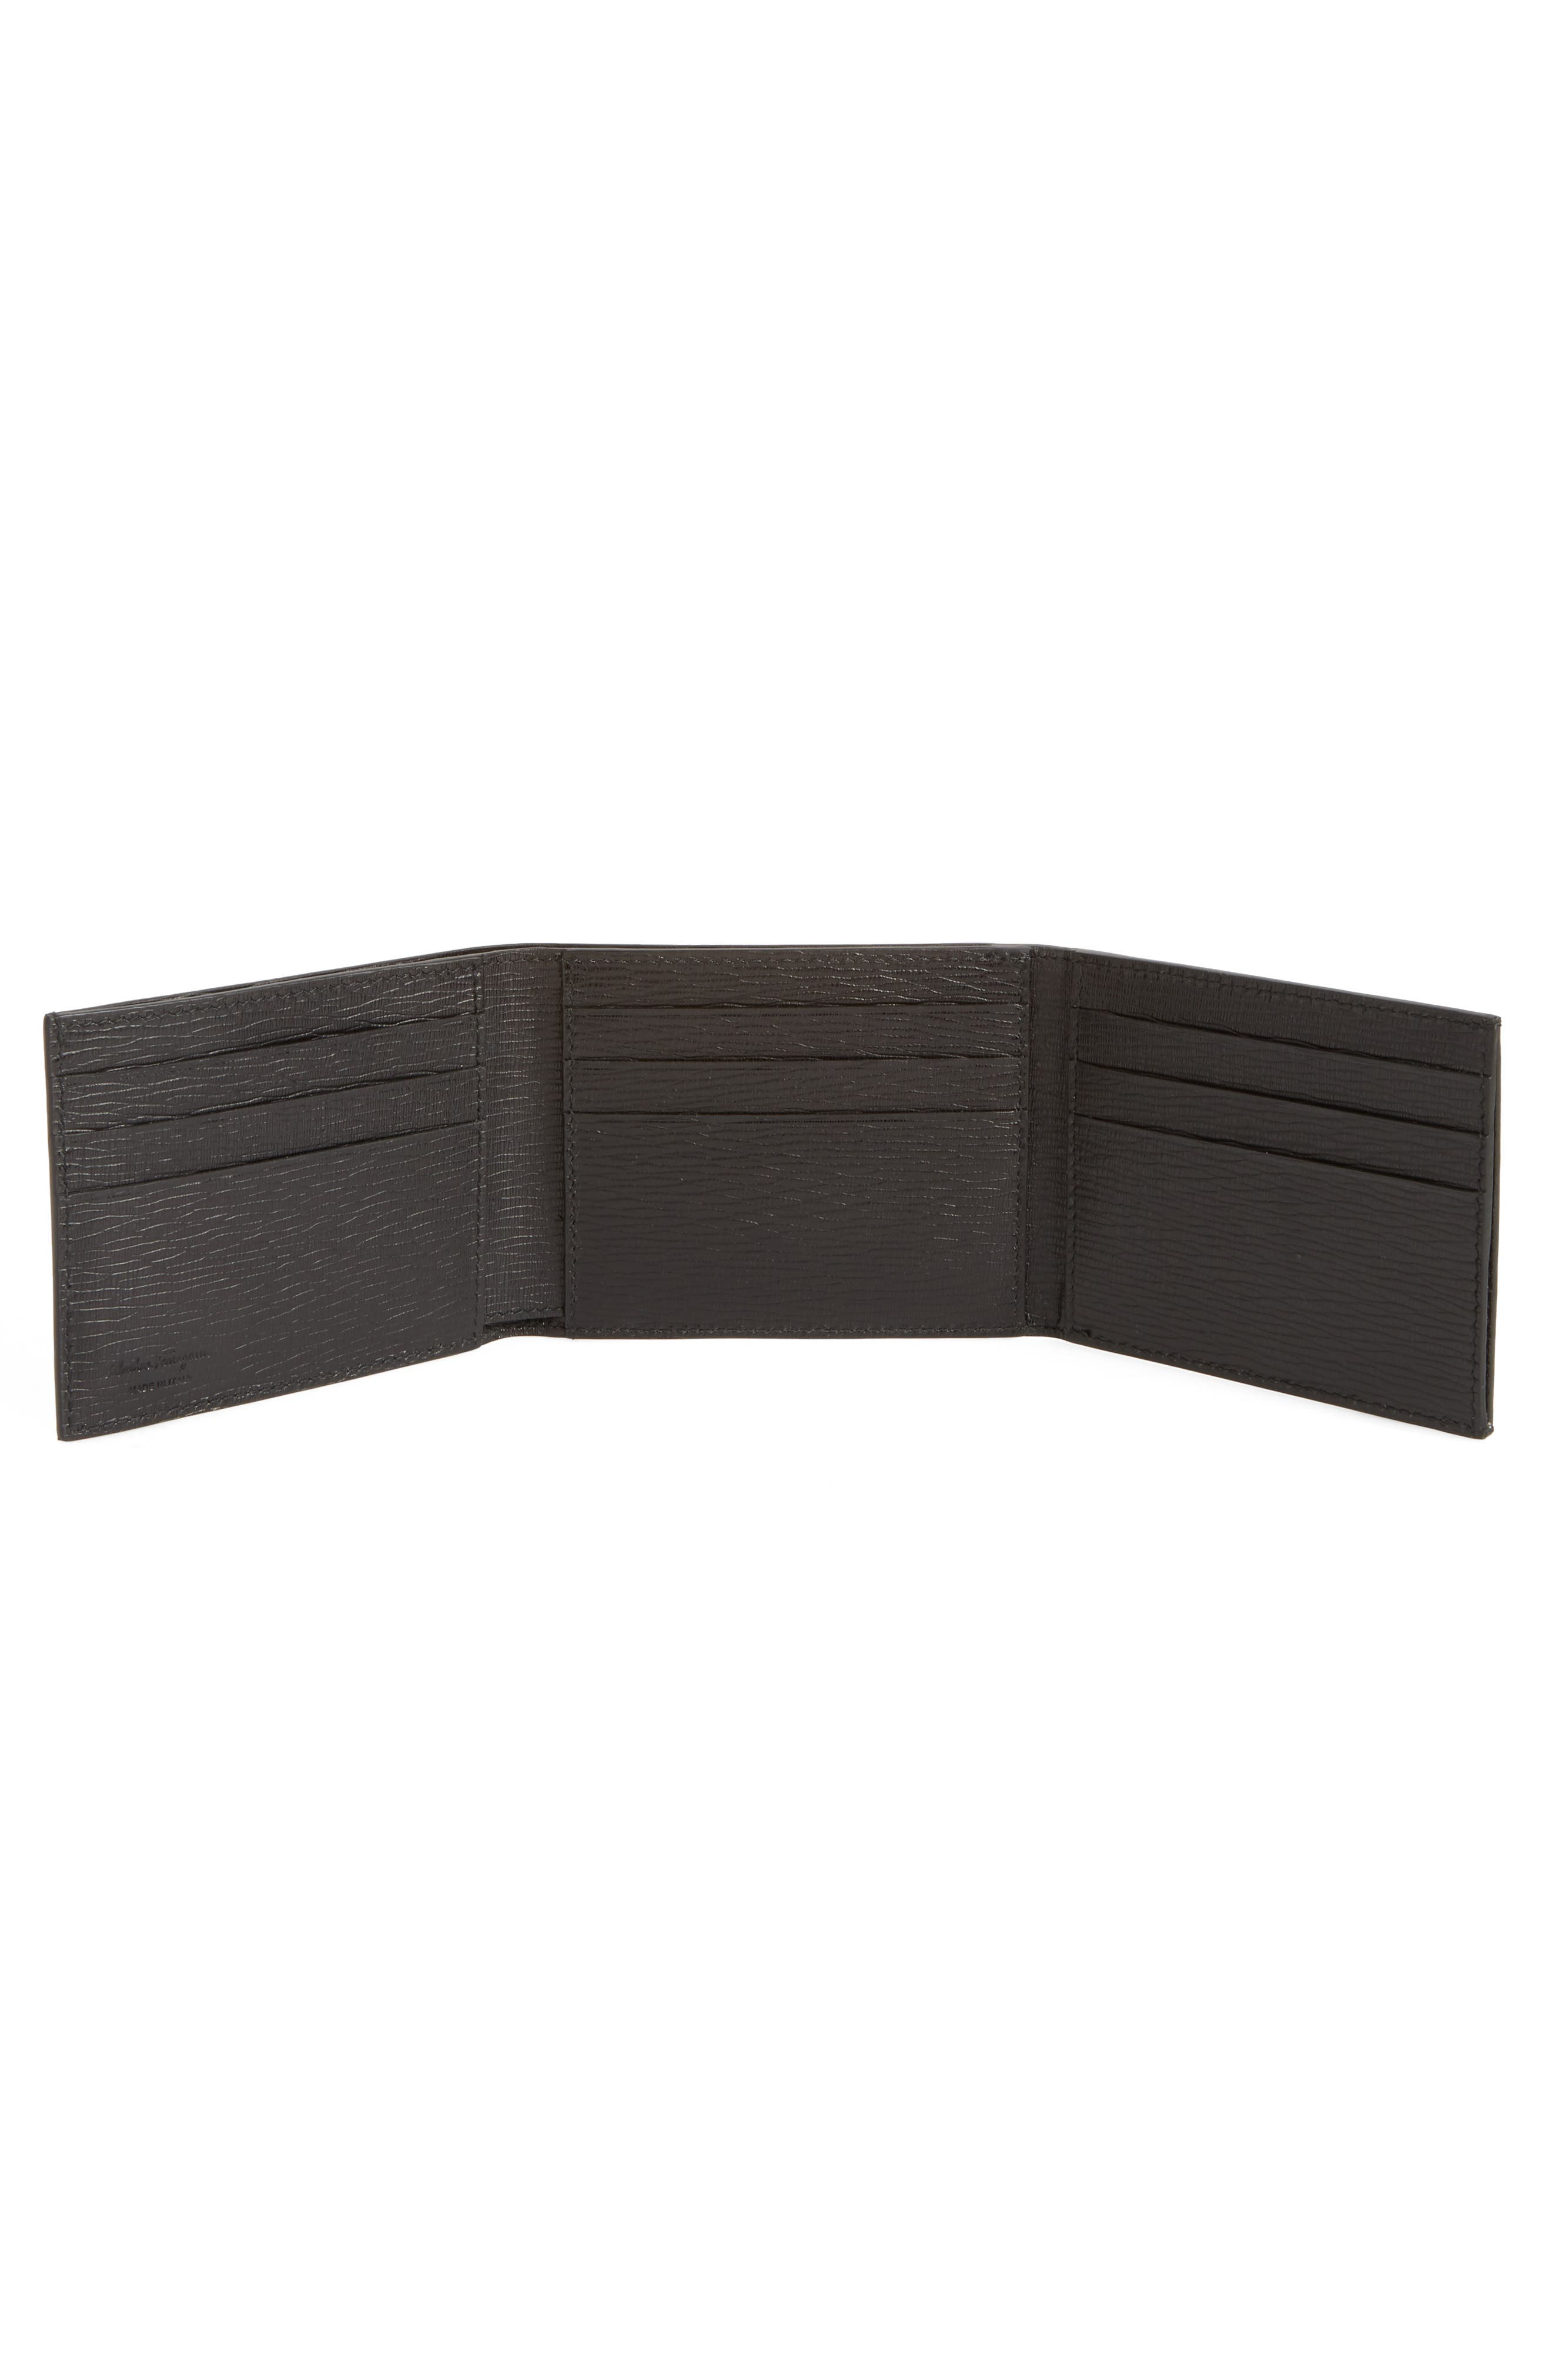 Revival Leather Wallet,                             Alternate thumbnail 2, color,                             001